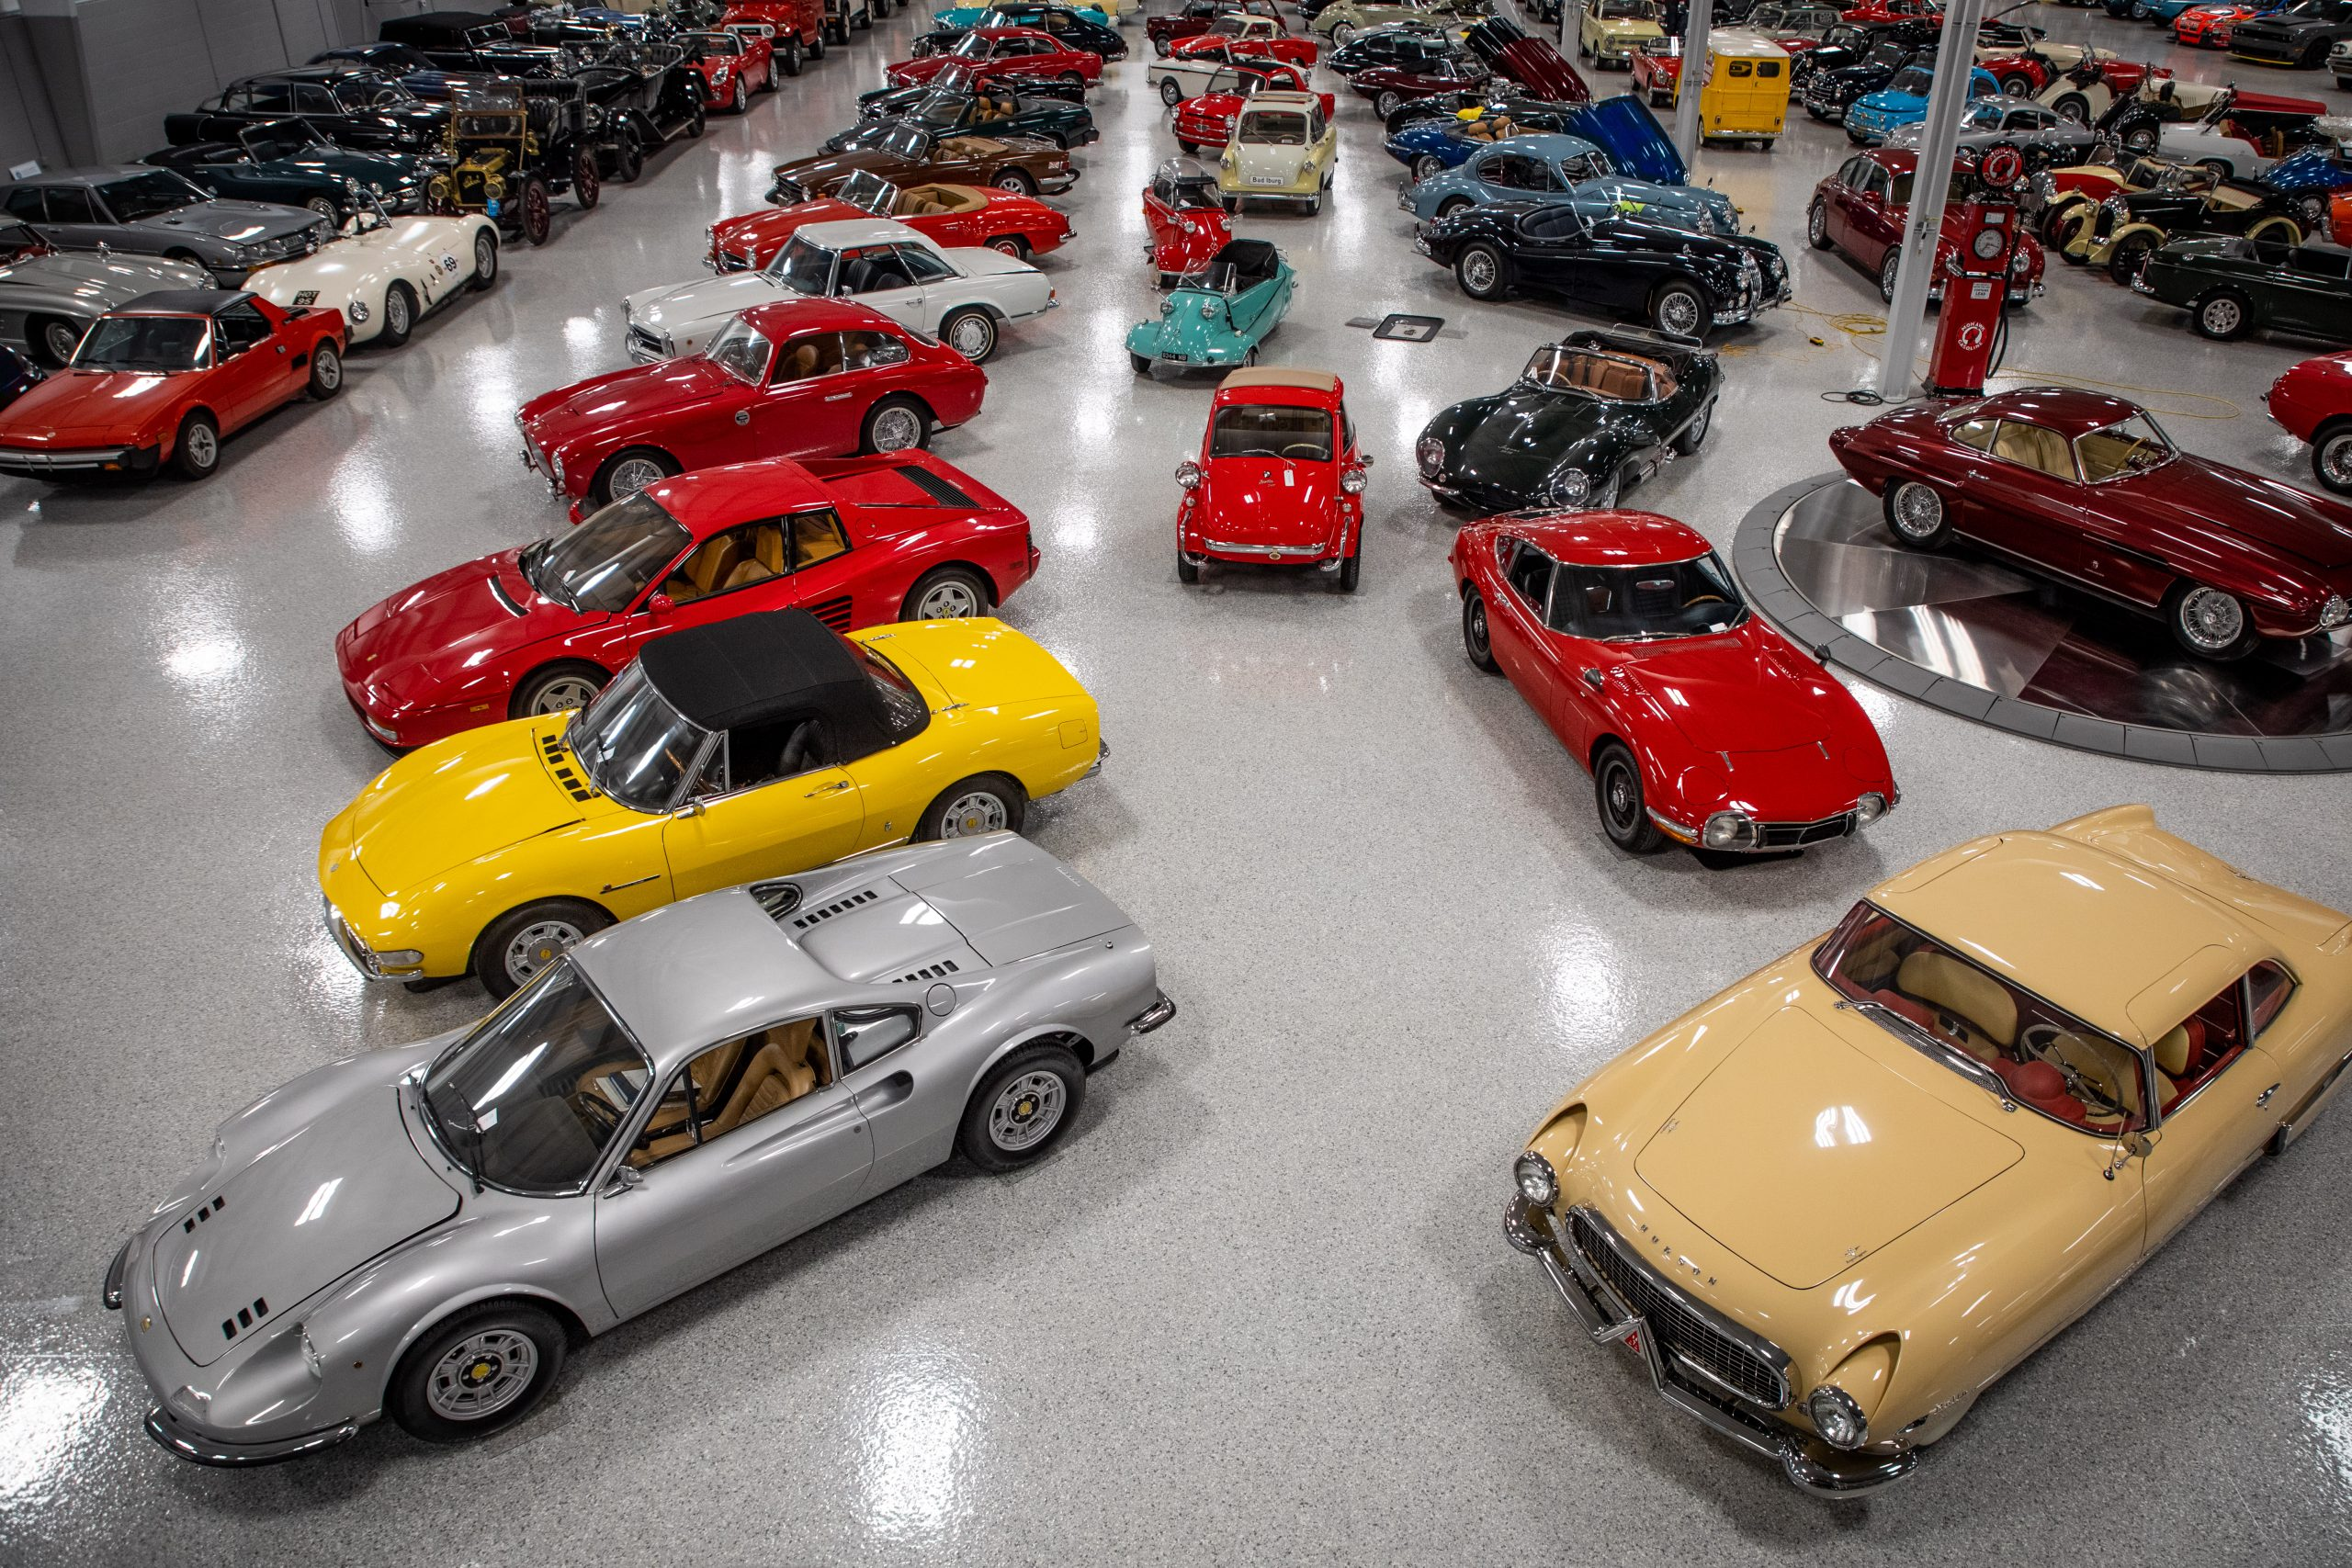 The Elkhart Collection is a dizzying whirlwind of automotive treasures